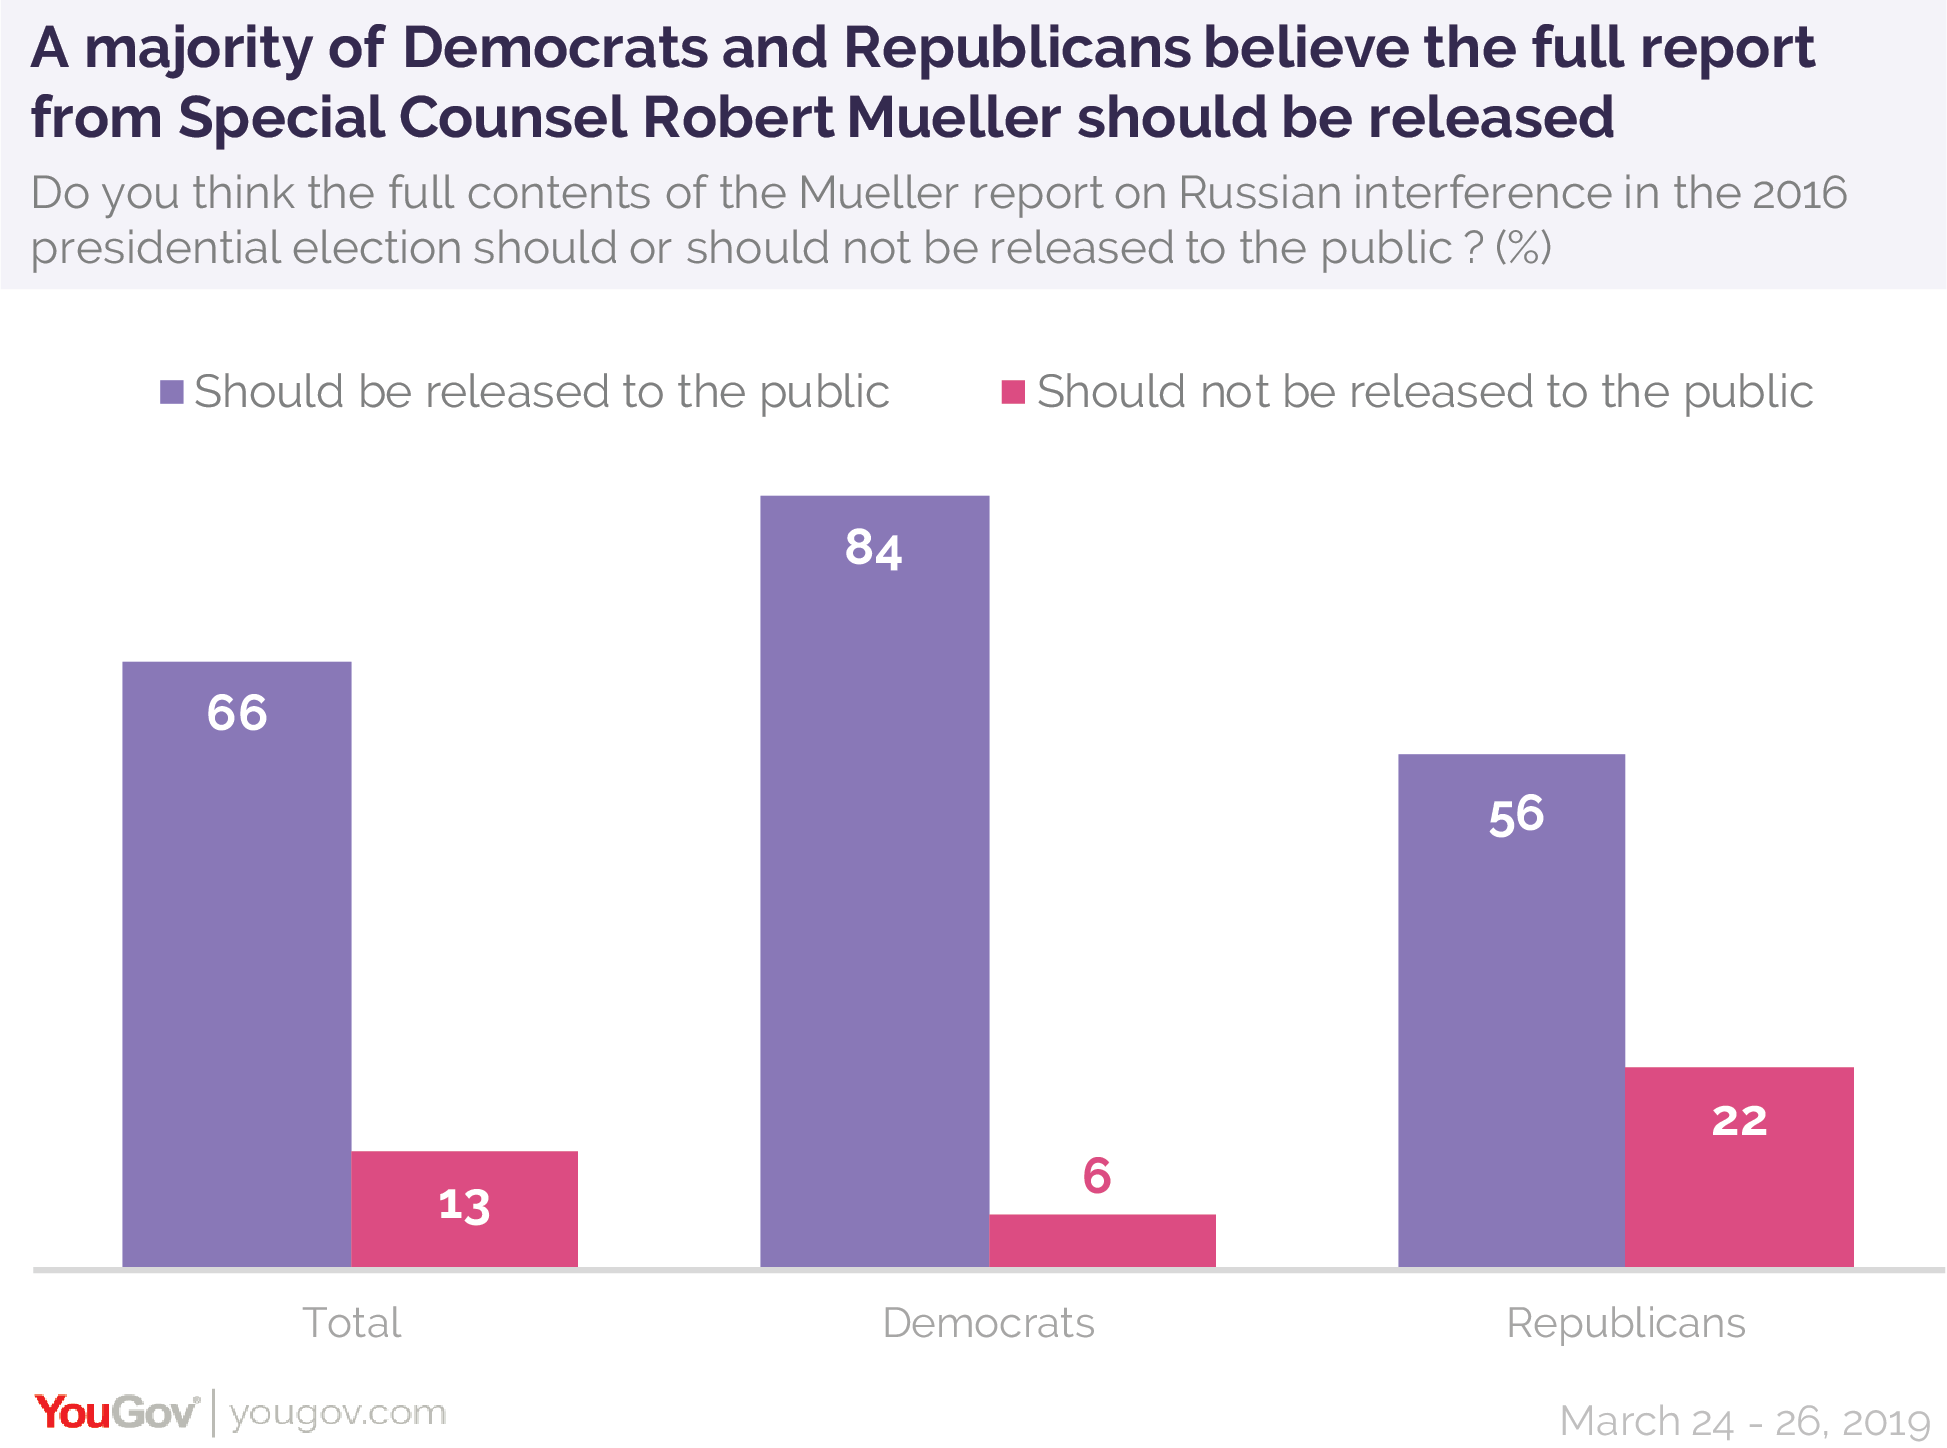 A majority of Democrats and Republicans believe the full report from Special Counsel Robert Mueller should be released